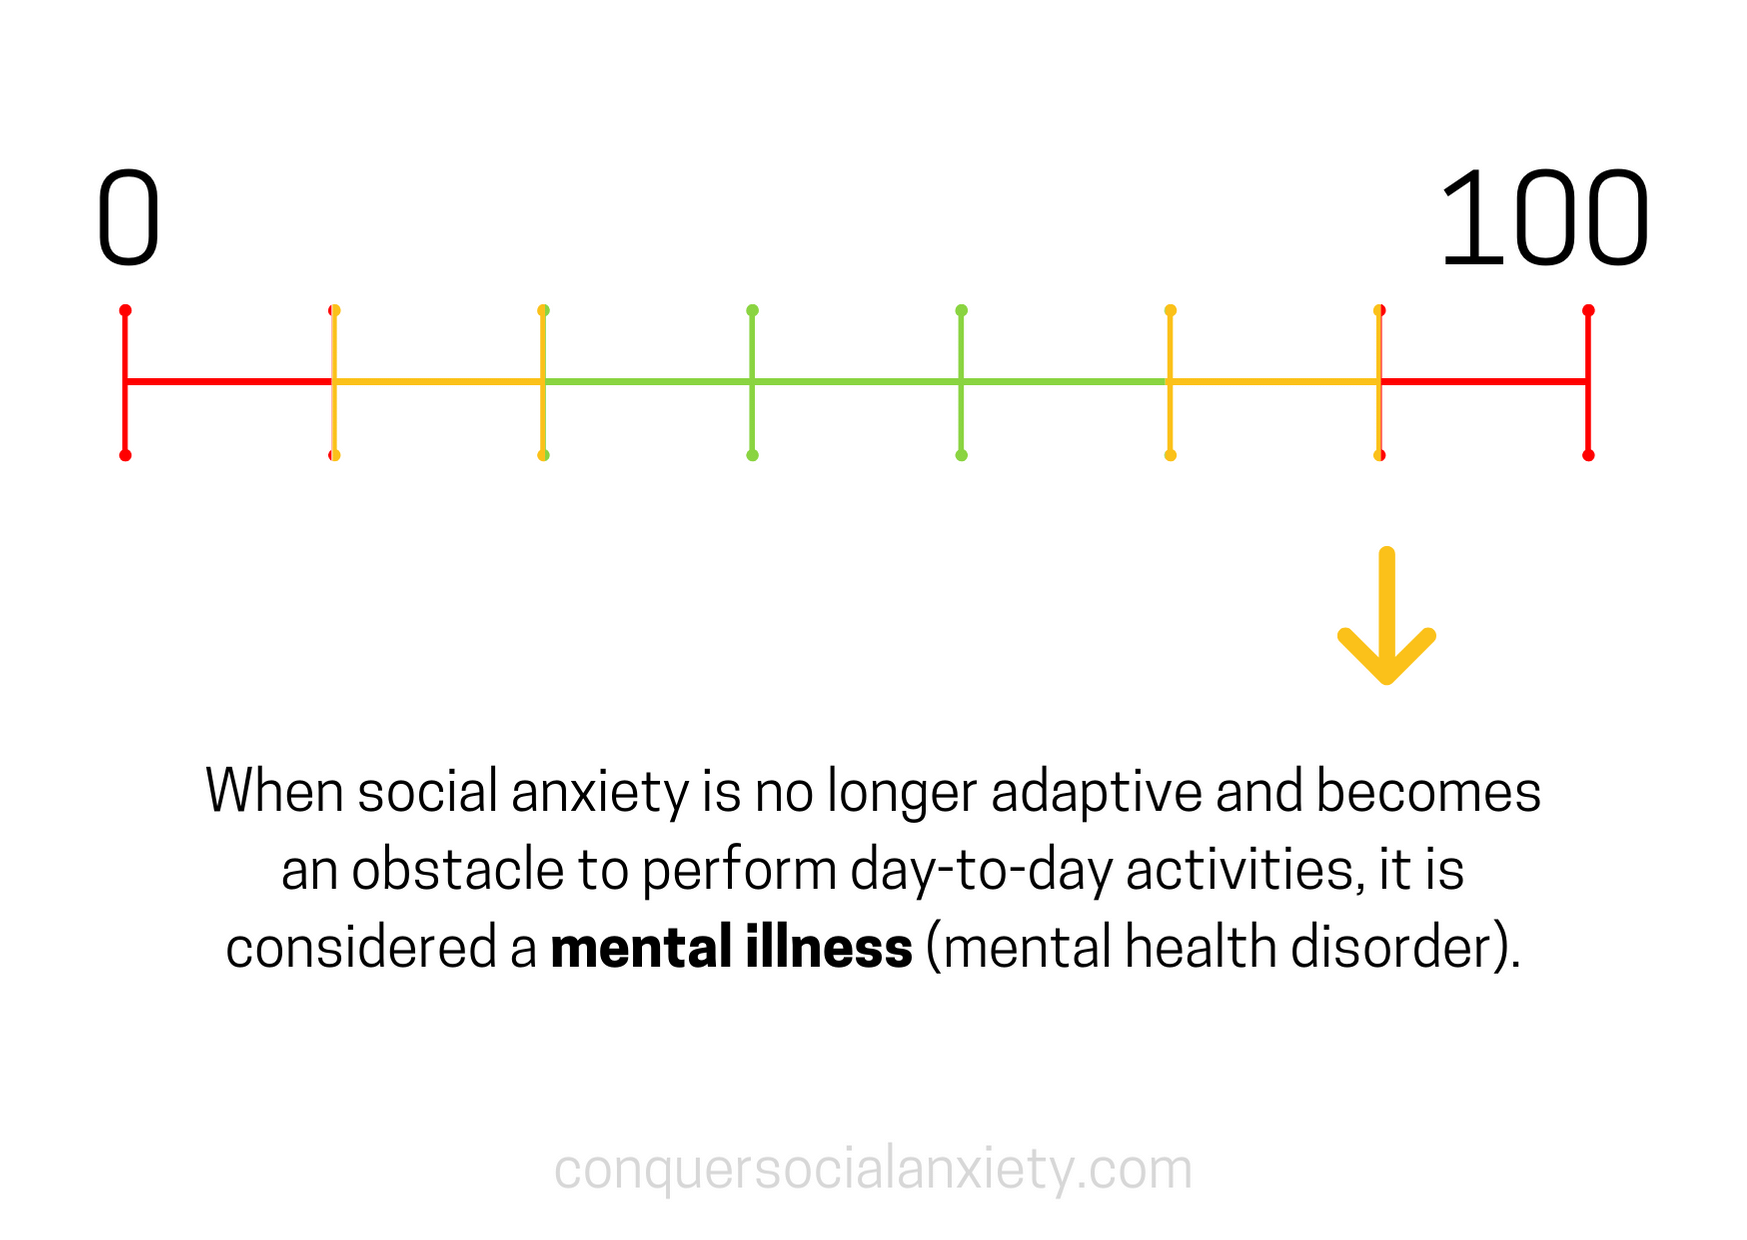 When social anxiety is no longer adaptive and becomes an obstacle to perform day-to-day activities, it is considered a mental illness (mental health disorder).